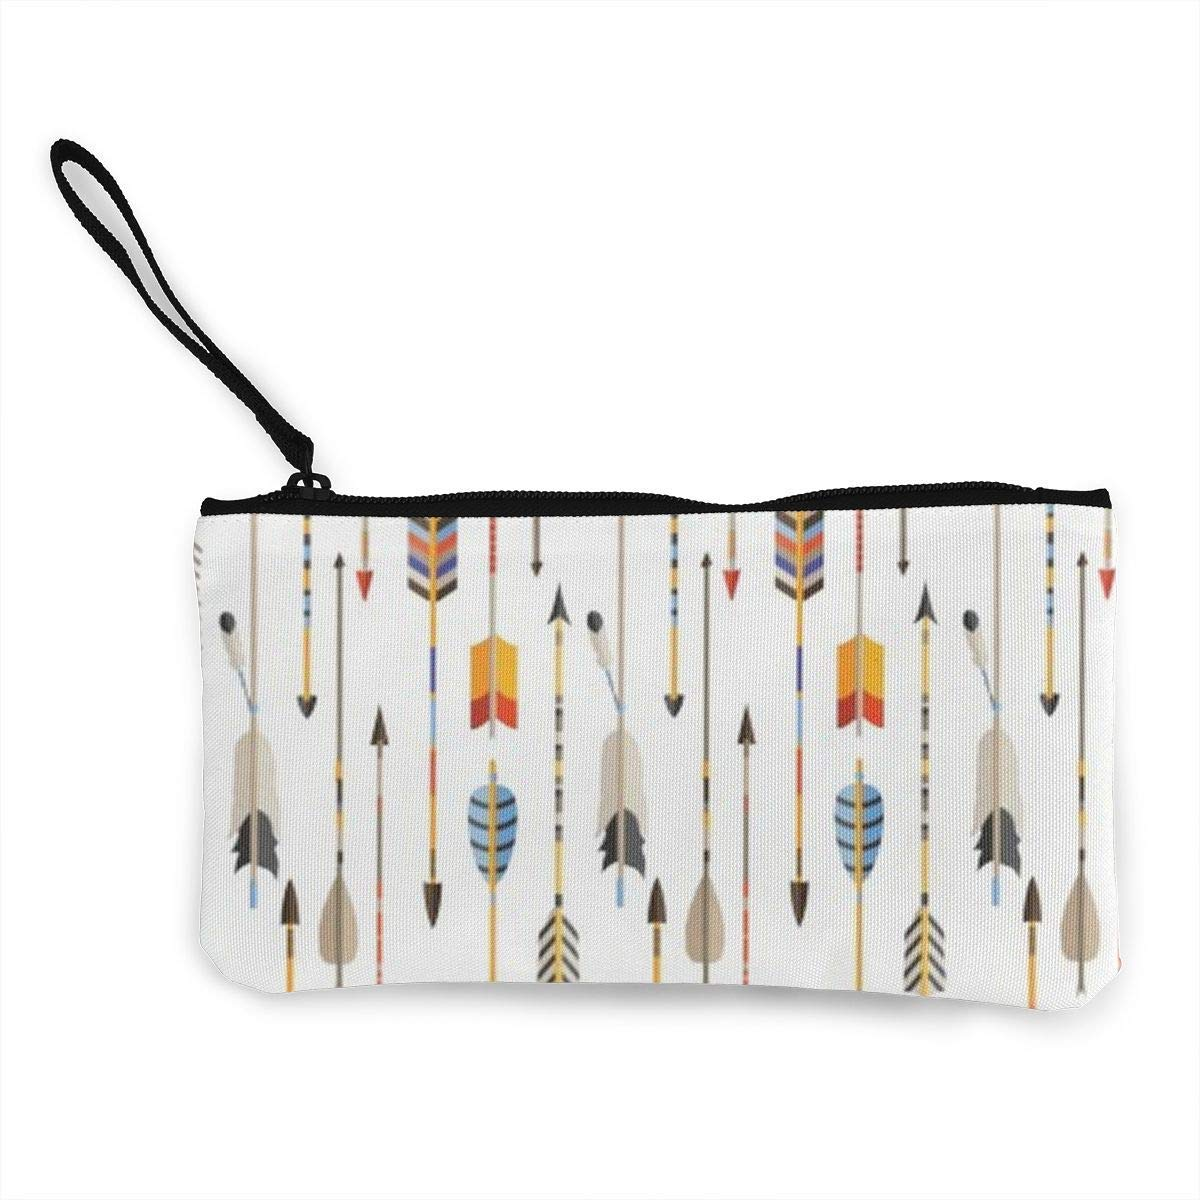 Colorful Indian Arrows Native Style Artwork for Hunters Tote Shopping Bag for Women Coin Purse Wallet Bag Makeup Bag Pencil Bag for Litter Girls Student